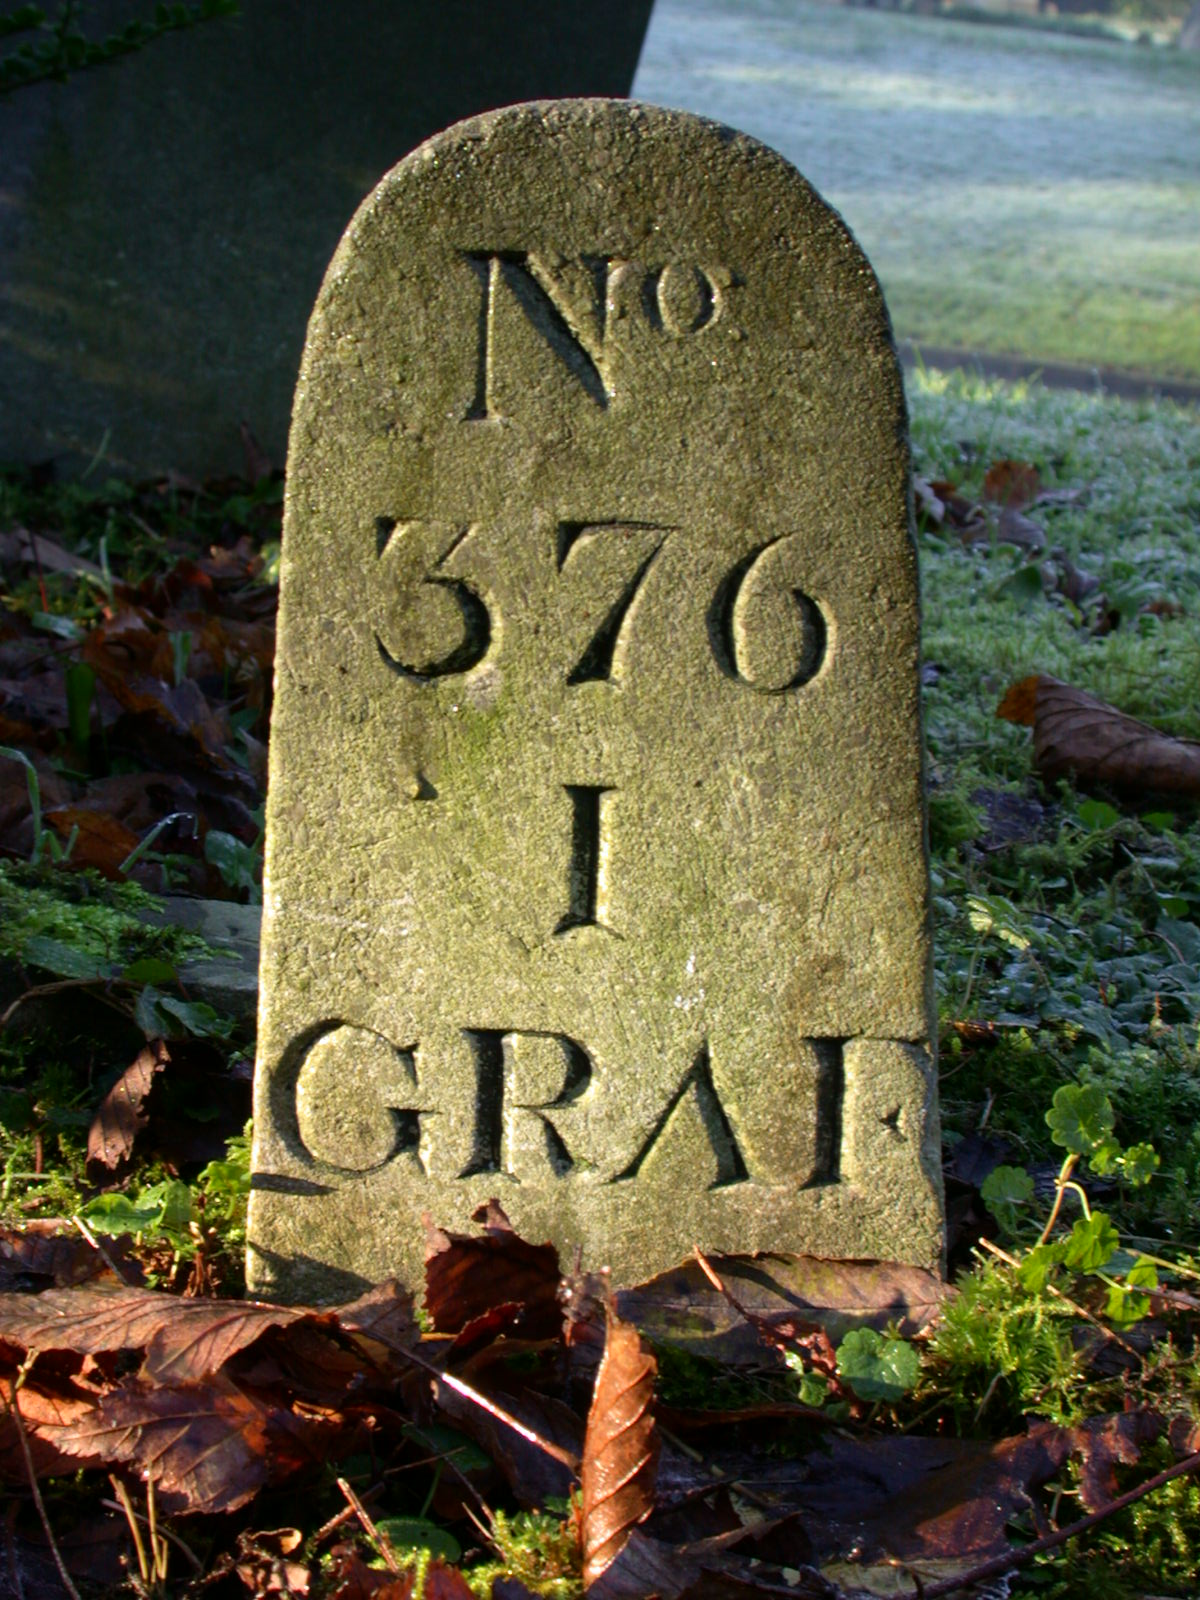 typo typography antique stone concrete texture grave graveyard architecture exteriors numbers no number 376 3 7 6 graf I tombstone tomb